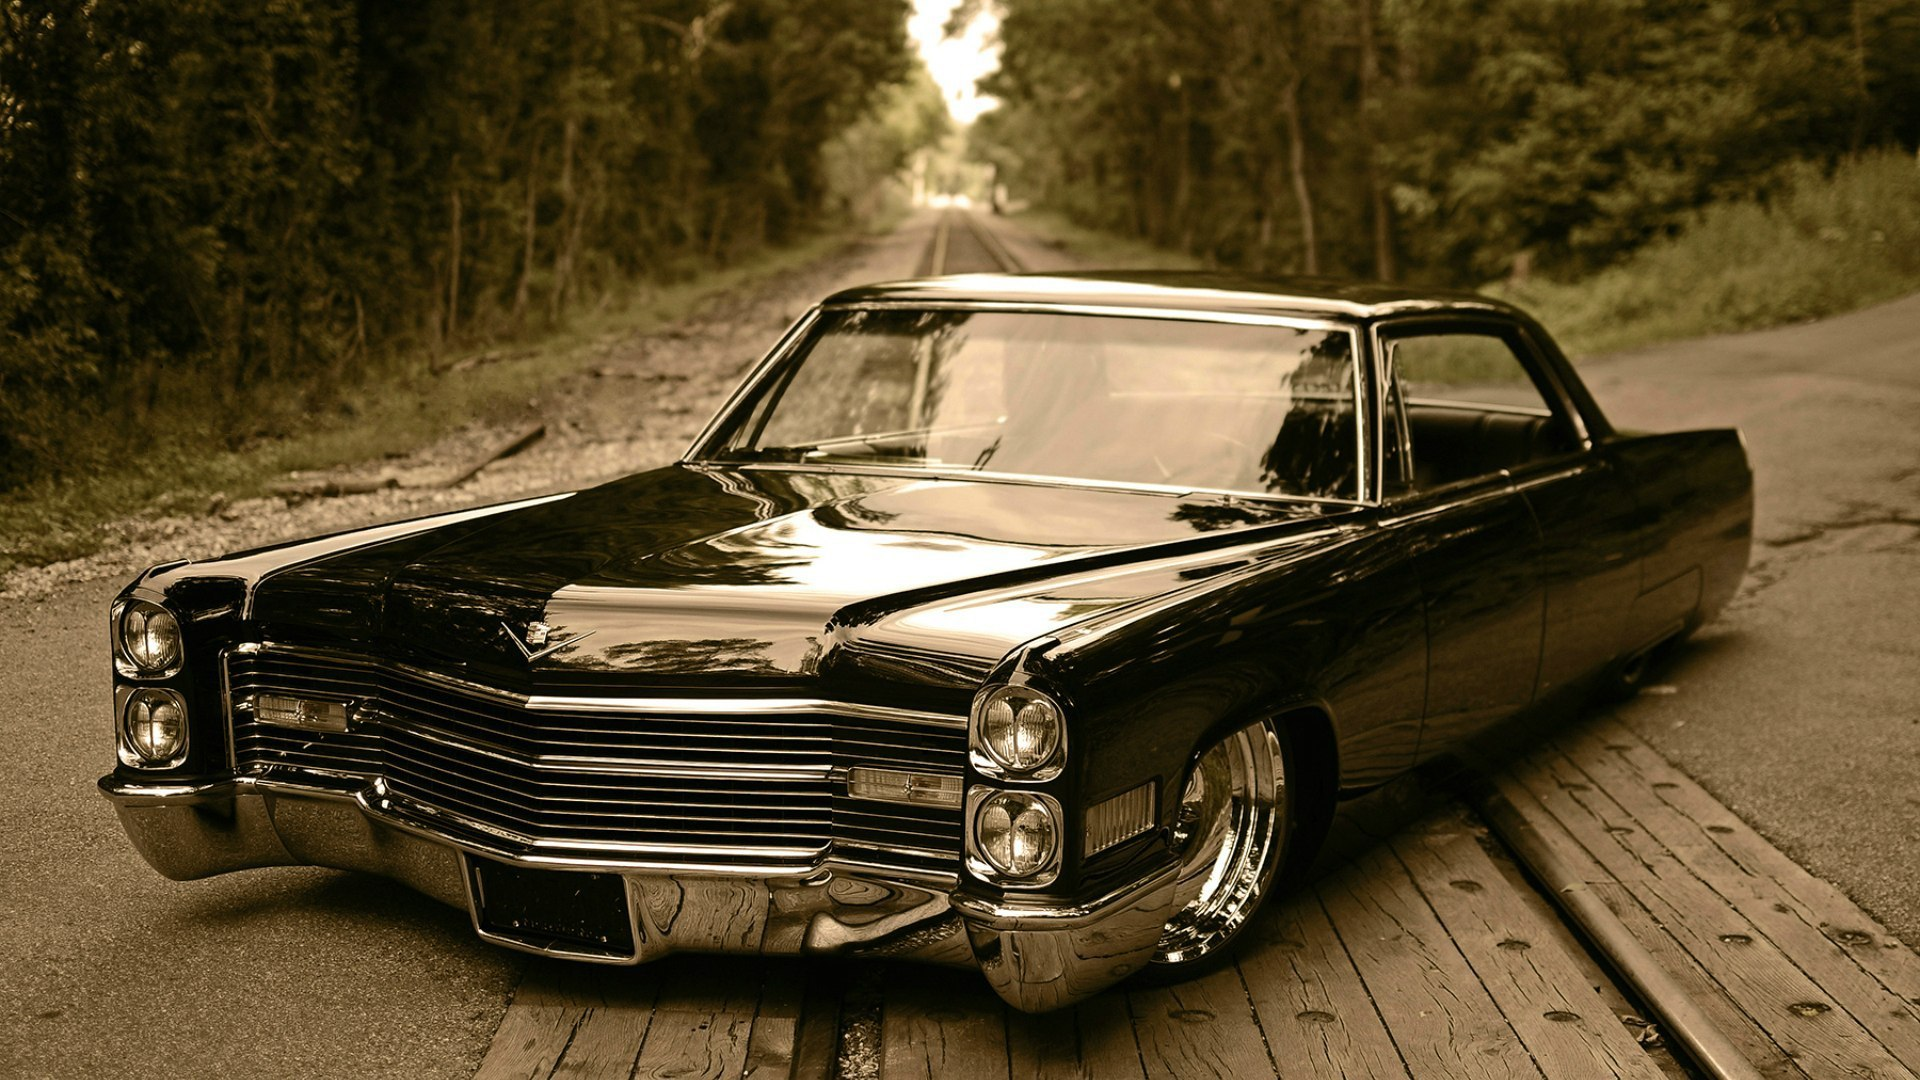 Black Cadillac on a Railway in the Woods 128.4 Kb